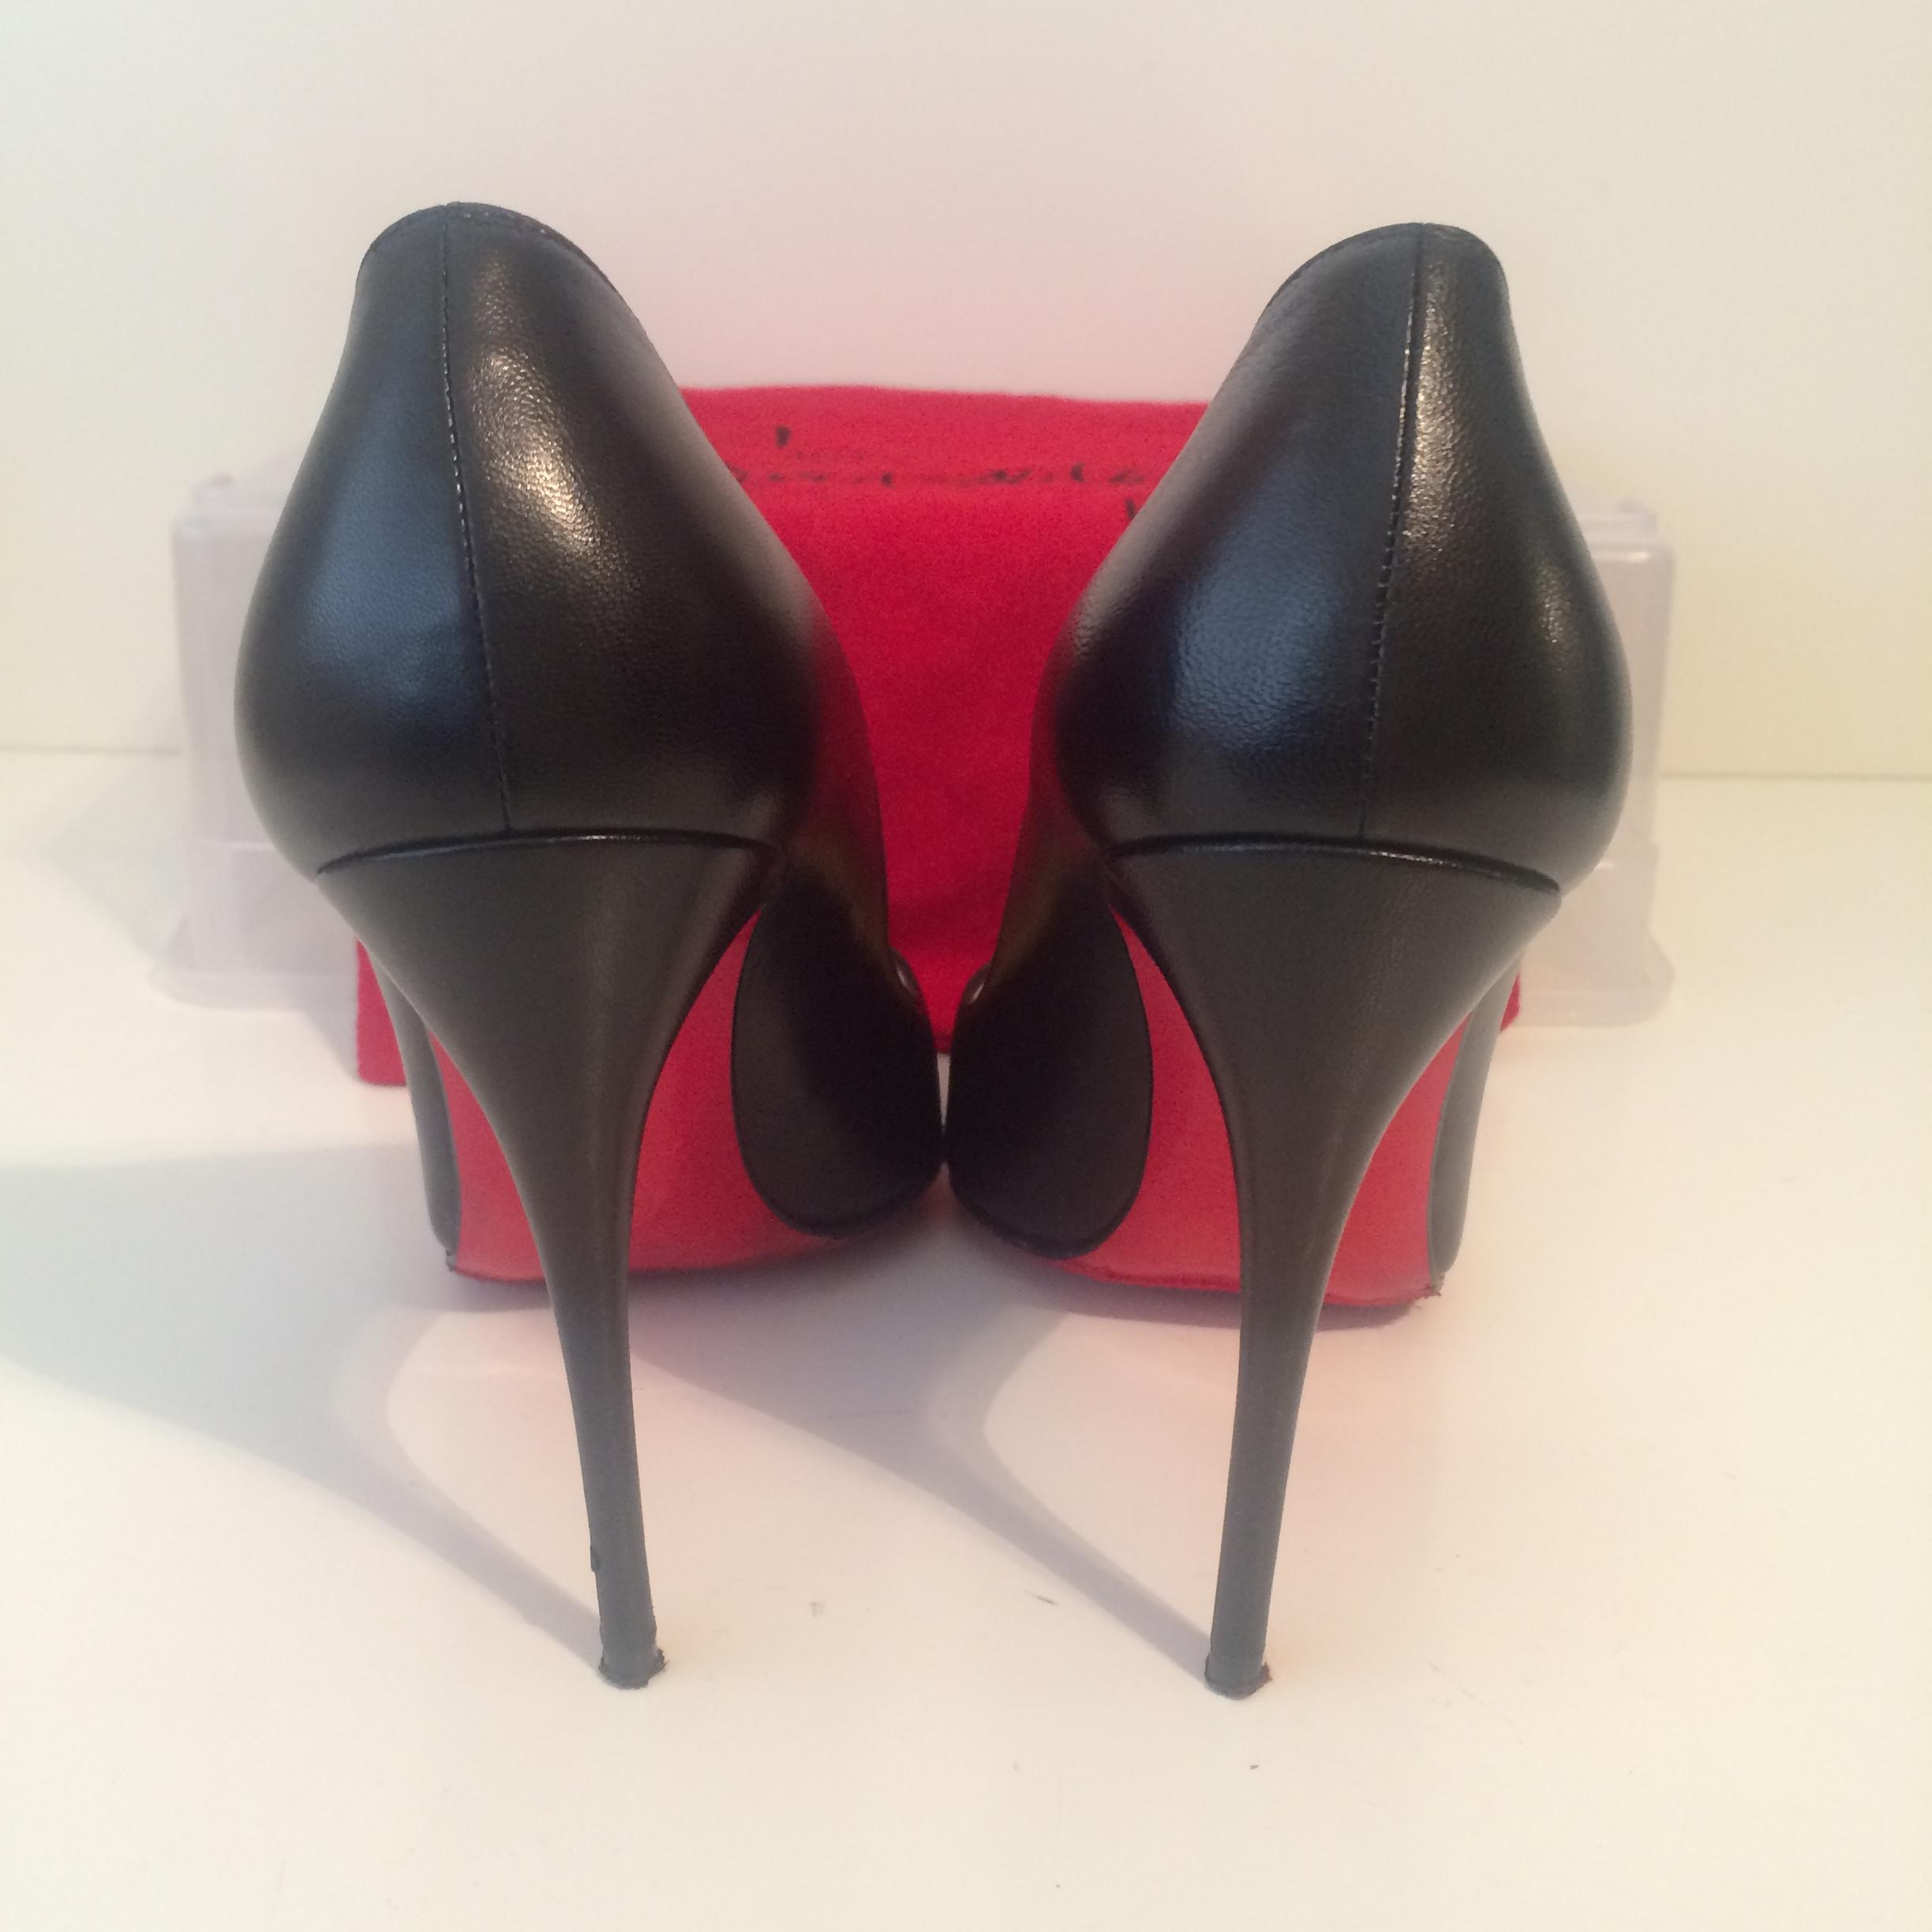 3400b0791a67 ... Christian Louboutin Black Pigalle Follies Leather Eu 38 - - - 8 Pumps  Size US 7.5 ...